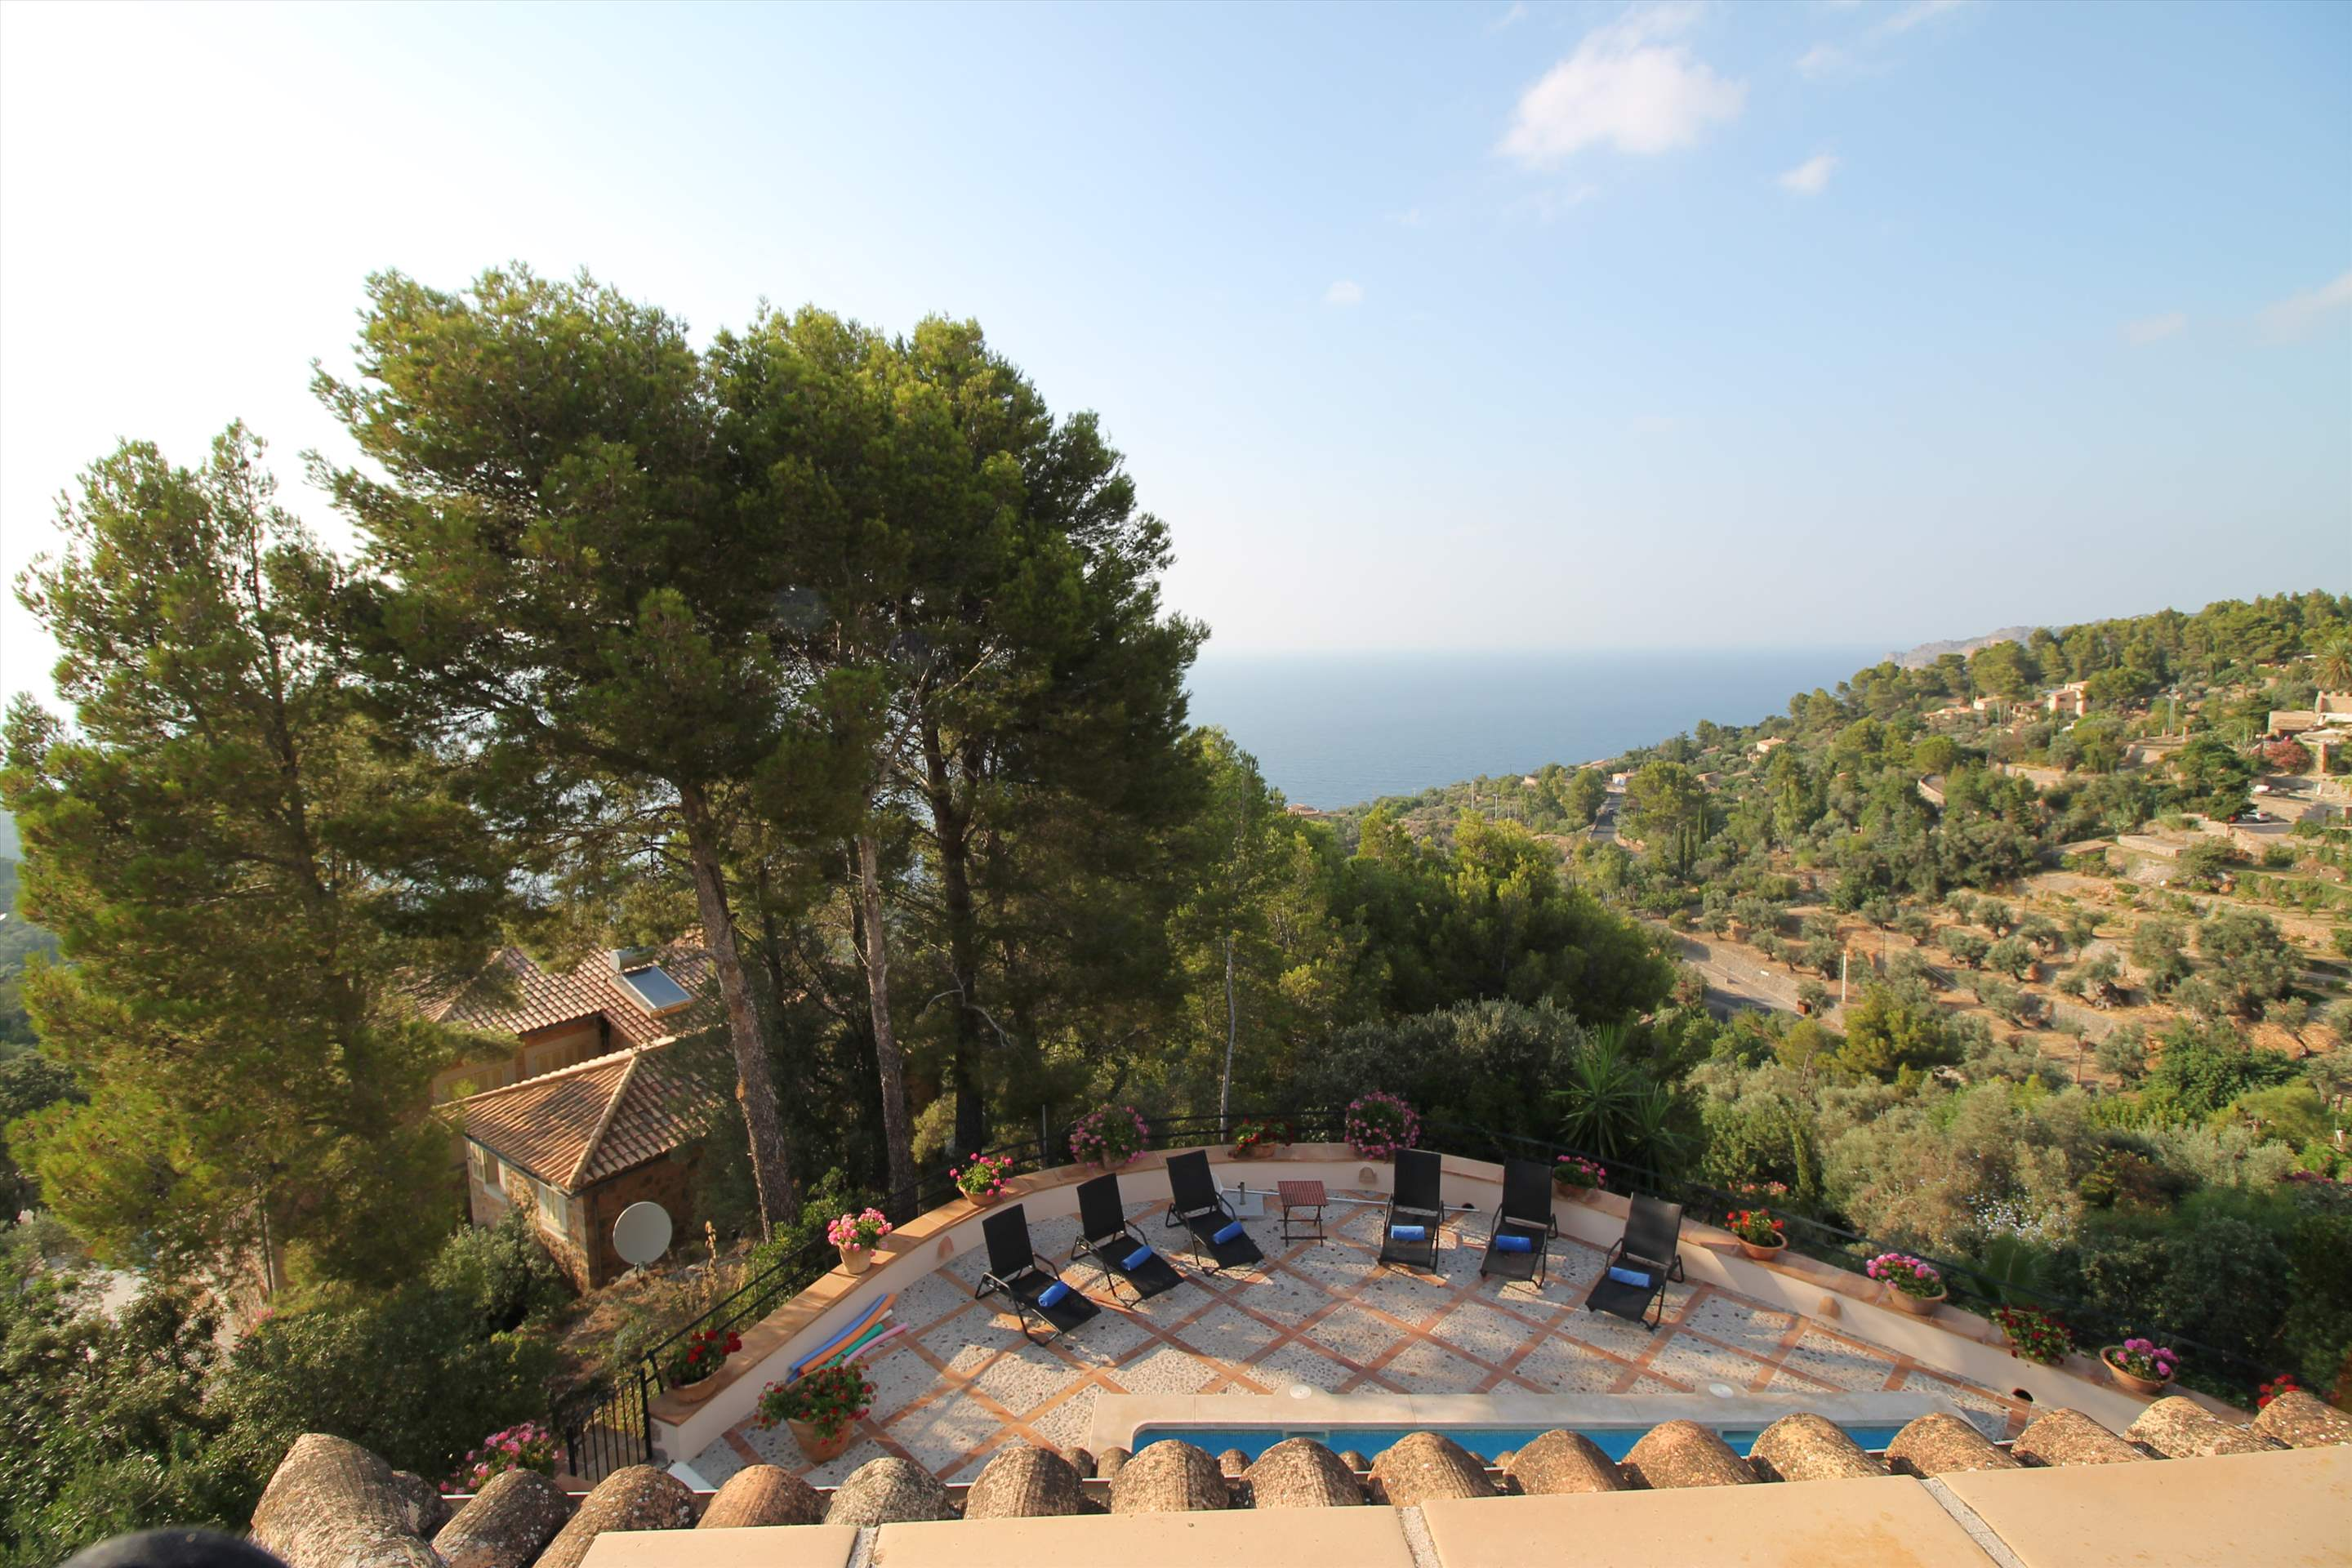 Can Winando, 4 Bedroom Rental, 4 bedroom villa in Soller & Deia, Majorca Photo #17